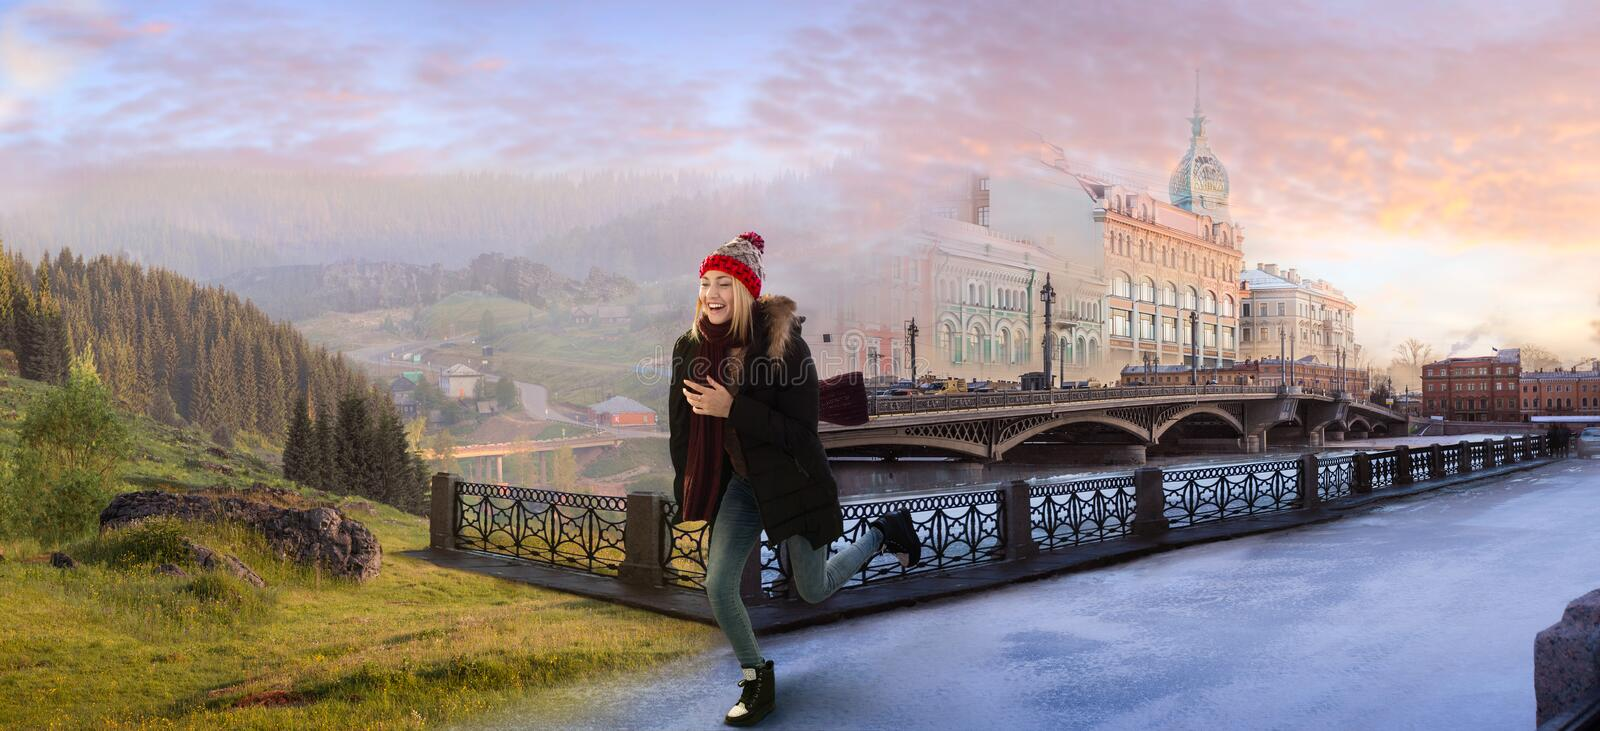 From winter to summer. Young woman crossing the surreal imaginary border between winter city and summer countryside at the dawn. Escape from big city life royalty free stock photography